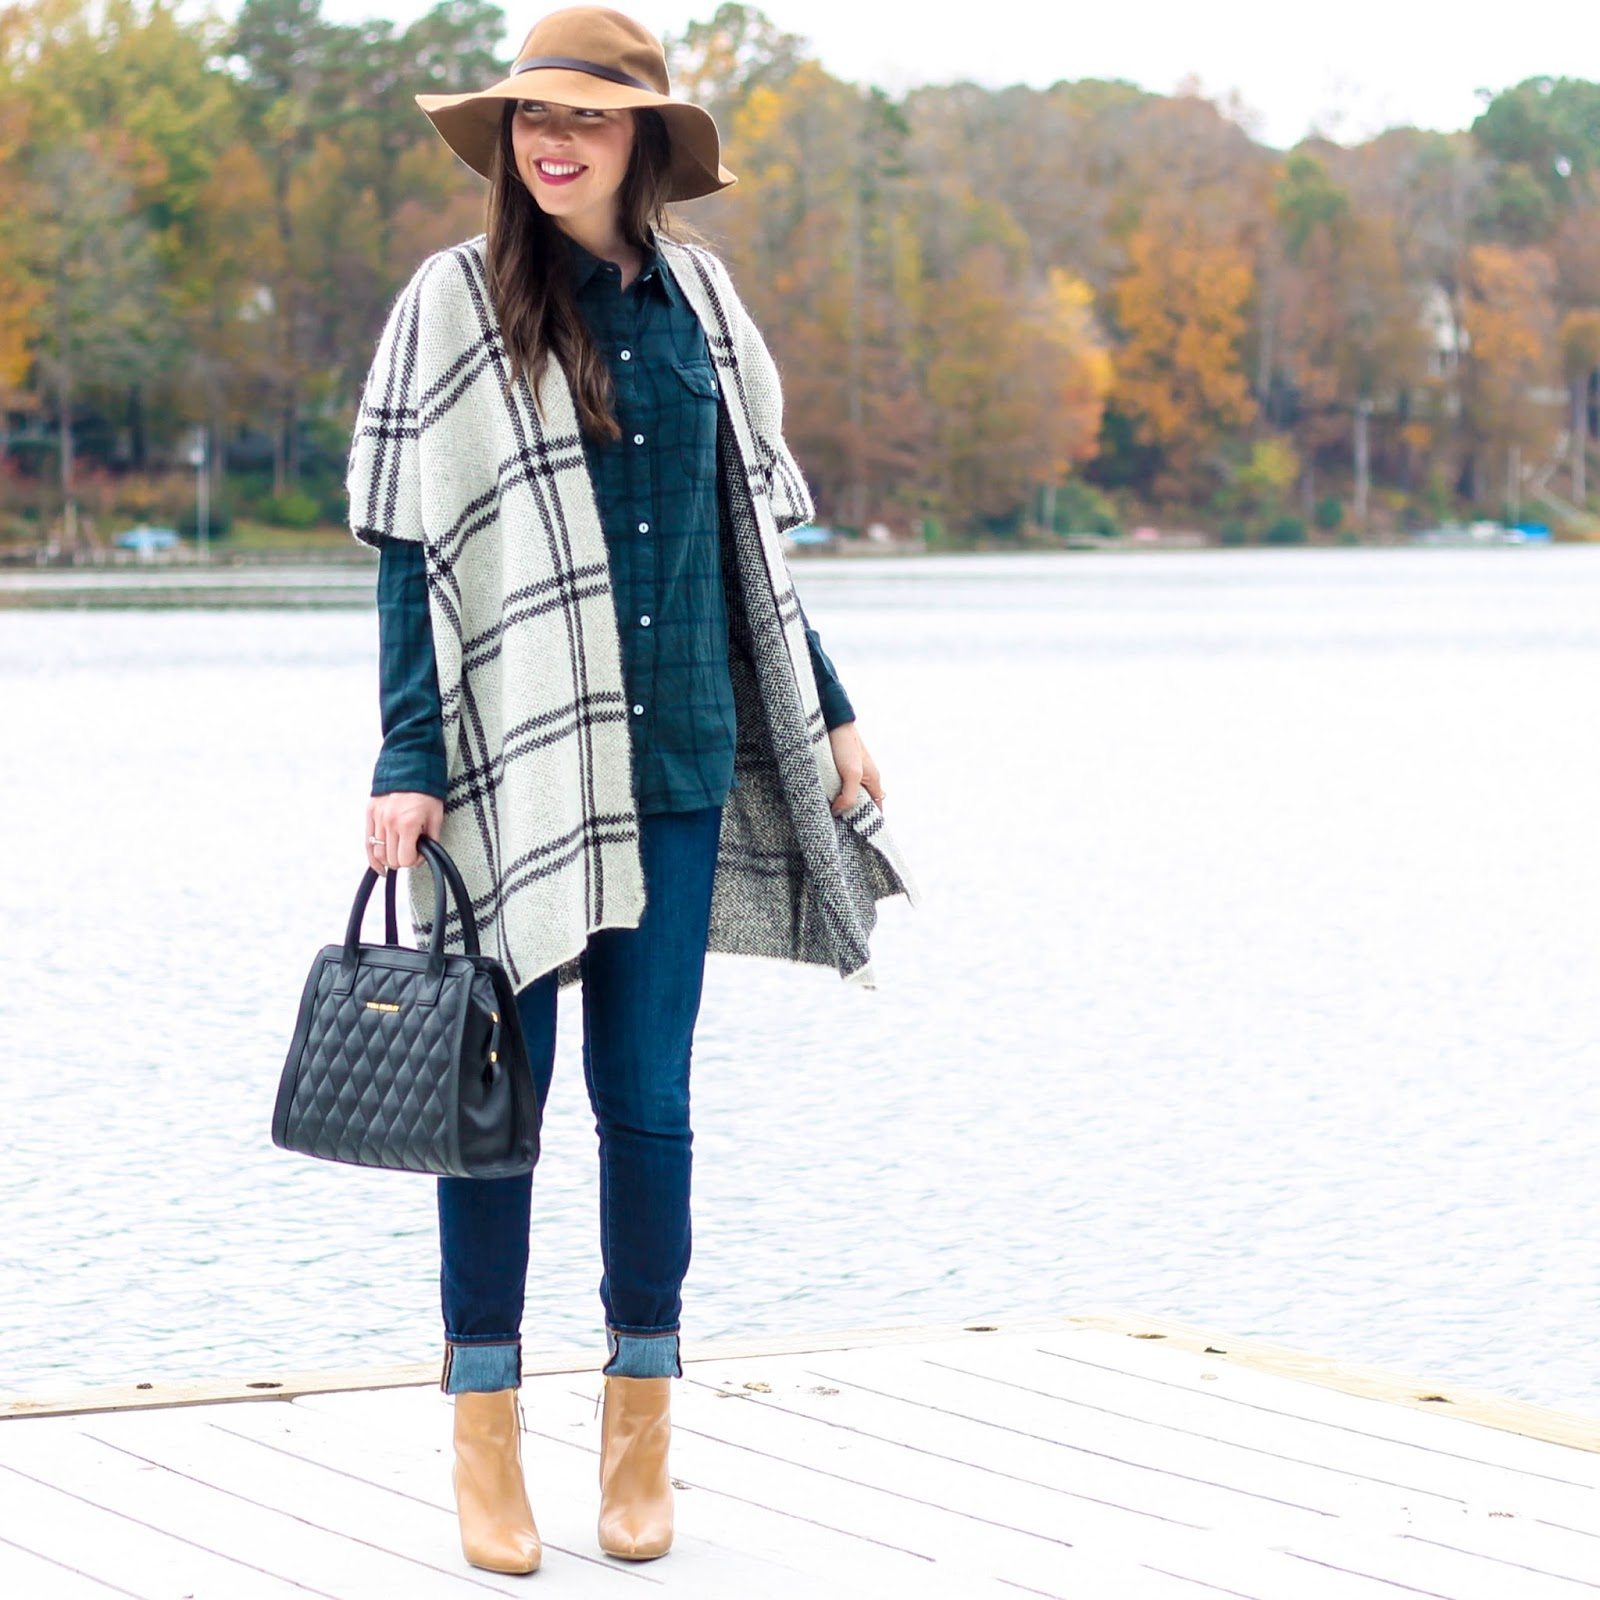 Plaid Shirt, Plaid Cape, Floppy Camel Hat, Fall Fashion, Fall Trends, Vera Bradley Quilted Natalie Satchel, Perfect Black Bag, Fall outfit, camel pointy toe booties, sam edelman booties, fall fashion, pretty in the pines, fashion blog, fashion blogger, lyon and post, sundry flannel, flannel shirts for women, thanksgiving outfit ideas, cute thanksgiving outfit